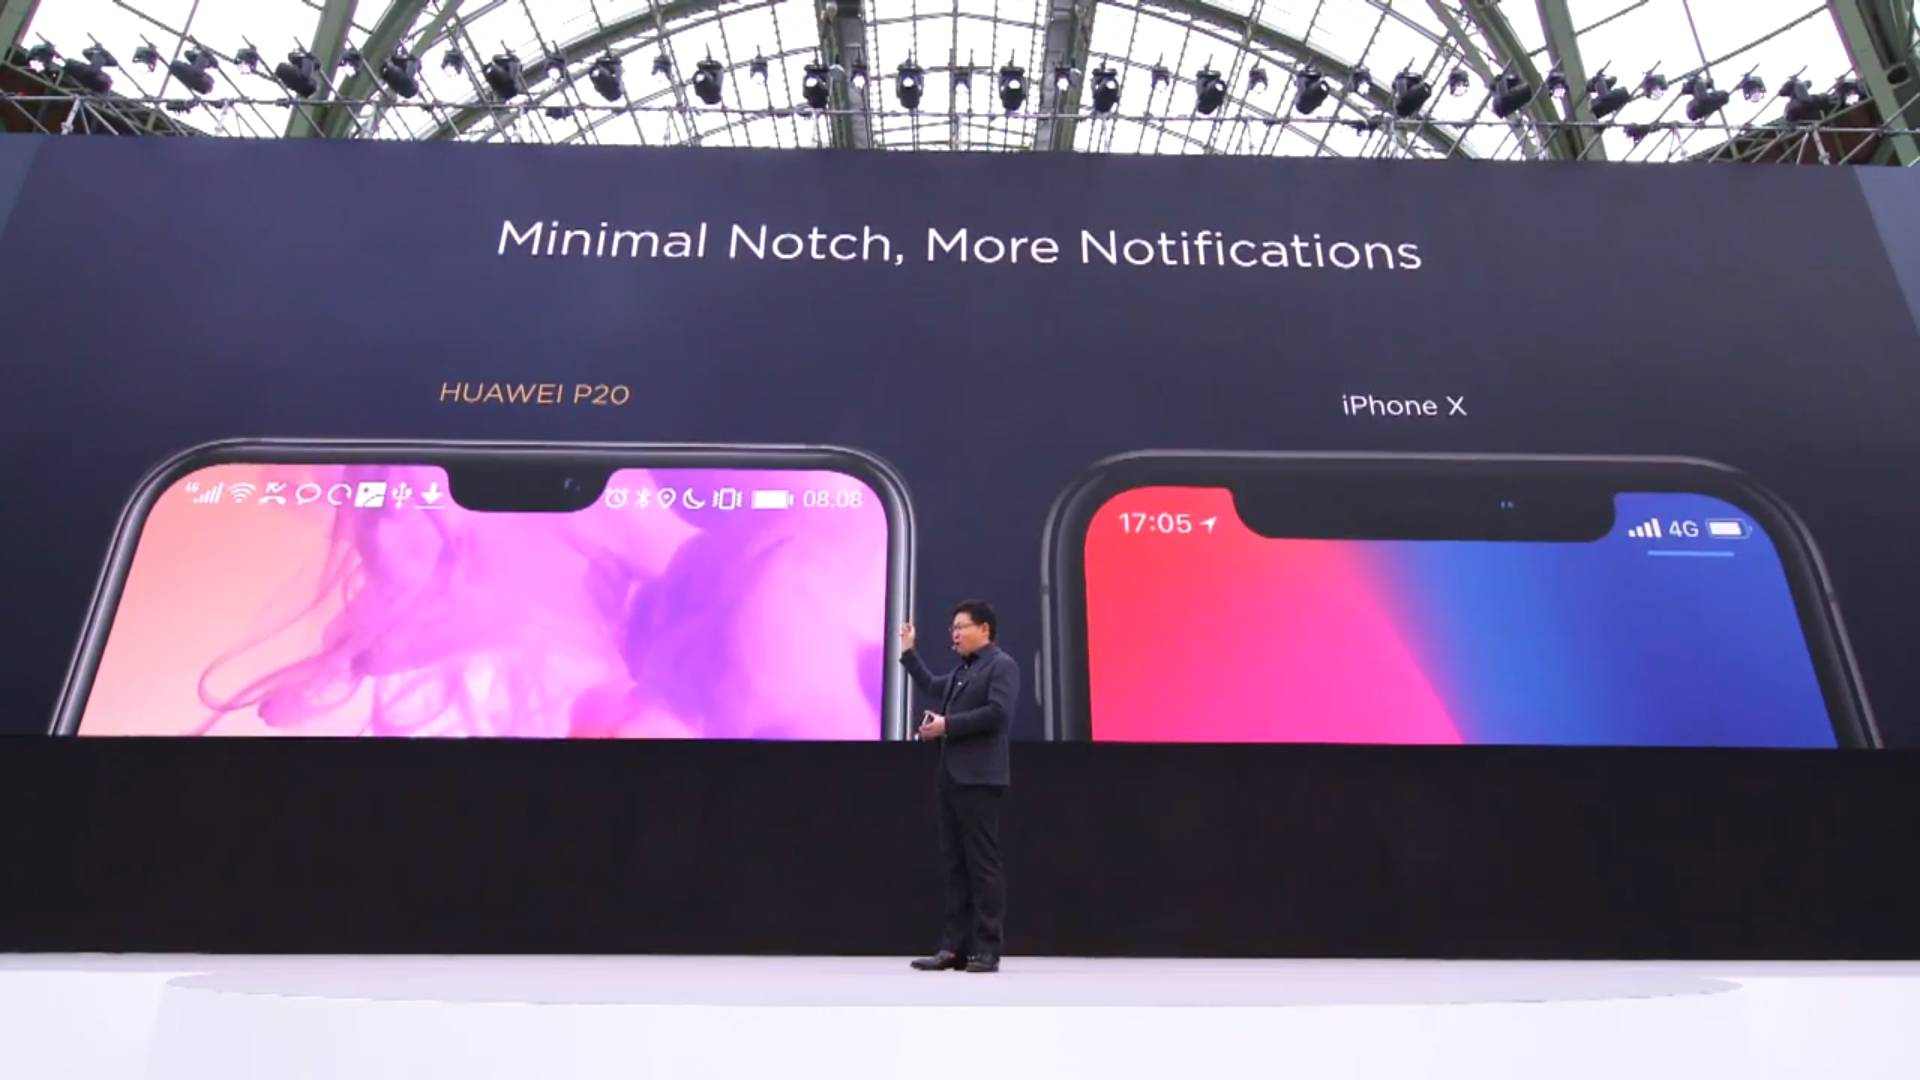 Huawei P20 launch updates: Huawei launches P20, P20 Pro and